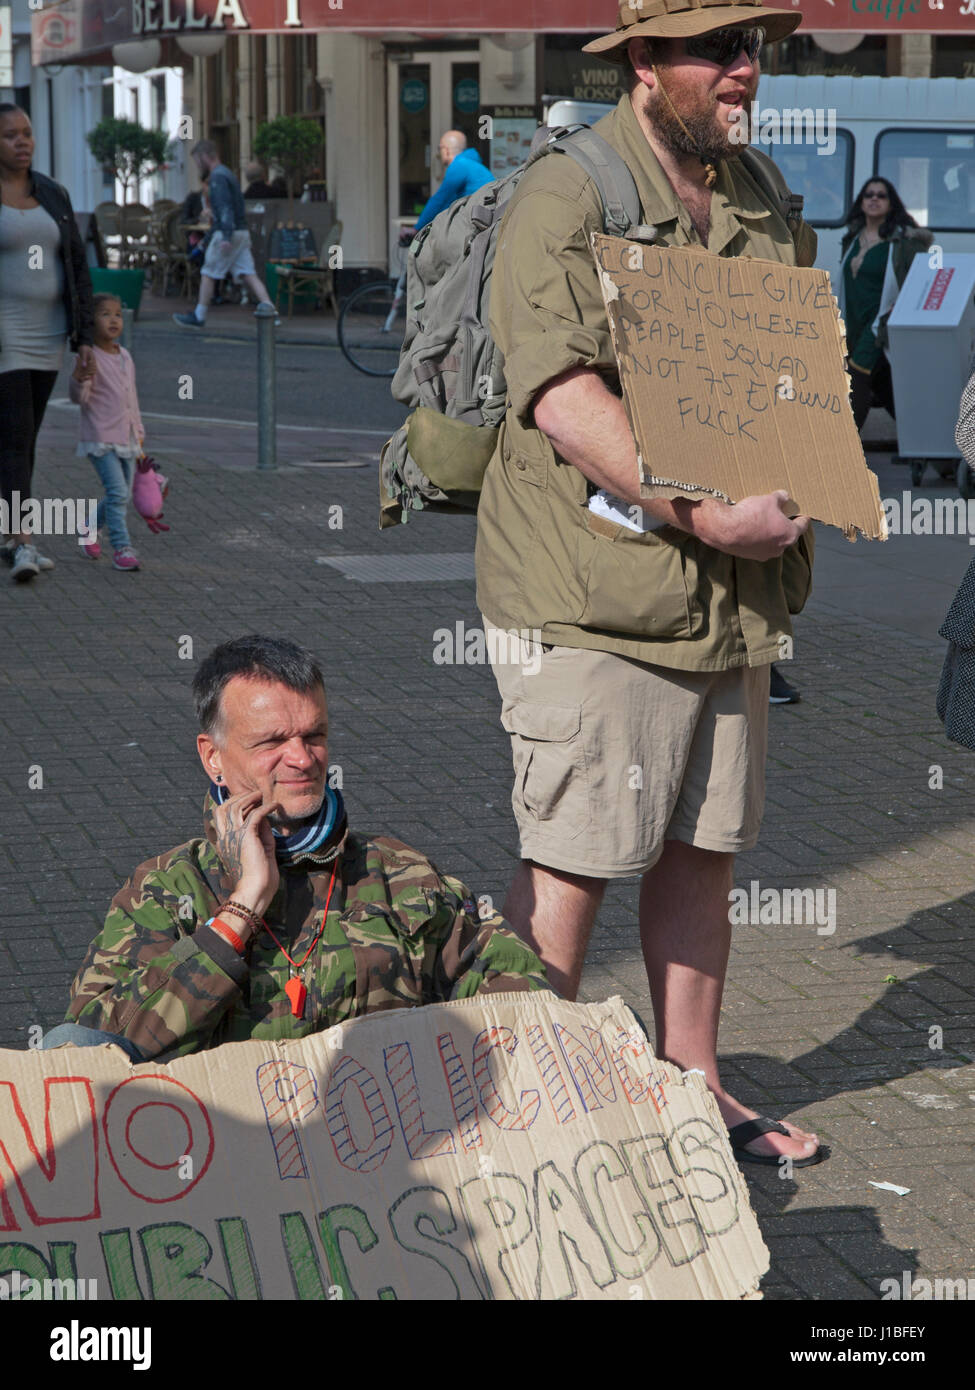 A protest in Brighton against the introduction of Public Space Protection Orders - Stock Image